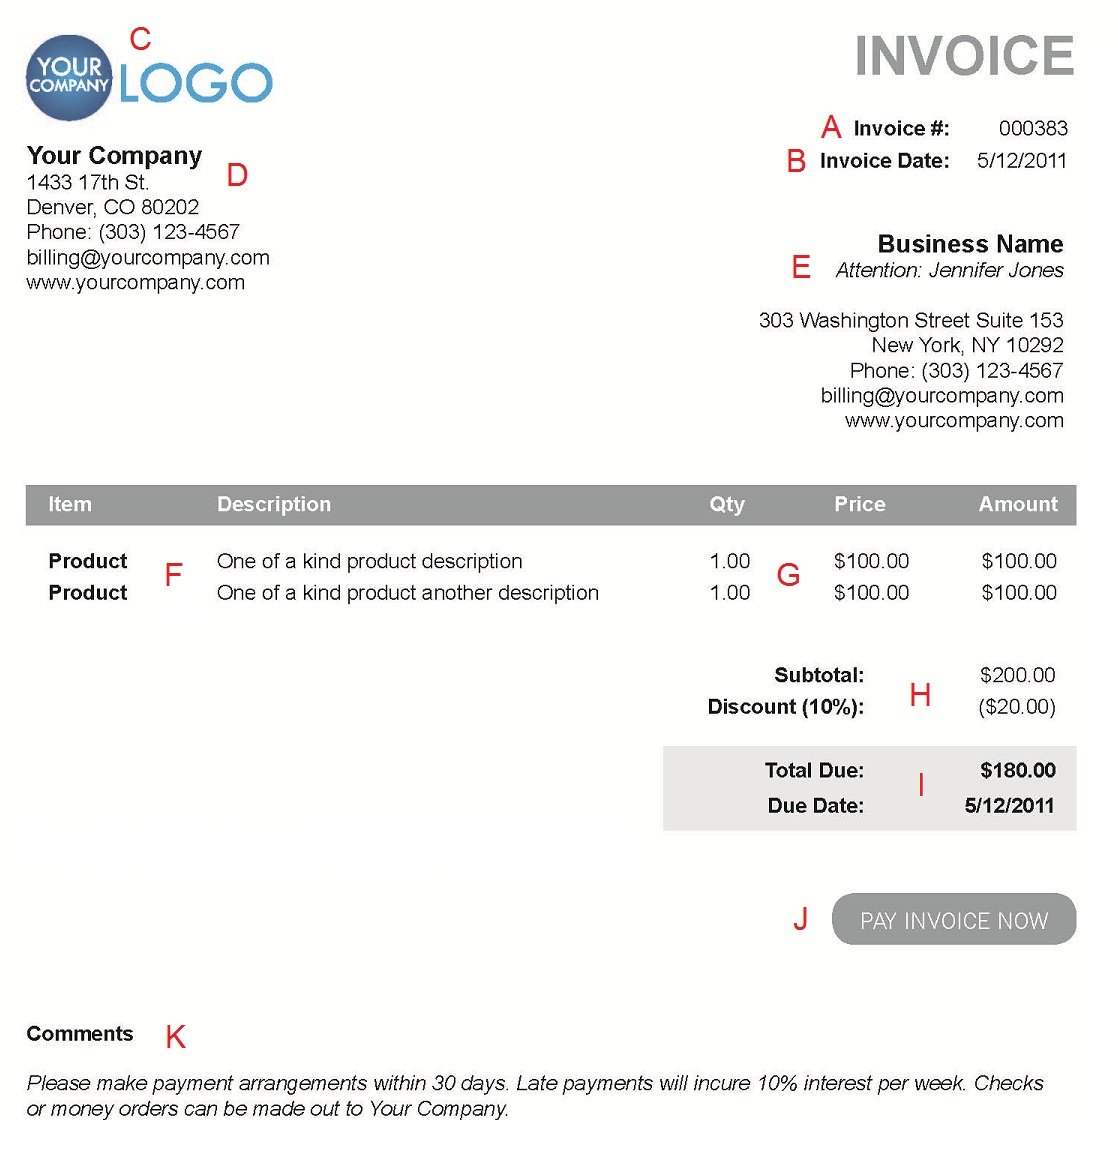 Coolmathgamesus  Marvellous The  Different Sections Of An Electronic Payment Invoice With Gorgeous A  With Cute Personal Receipts Also Employee Handbook Receipt In Addition Virtually There Eticket Receipt And Rental Receipt Word Template As Well As Can I Return An Item Without A Receipt Additionally Receipt Dispenser From Paysimplecom With Coolmathgamesus  Gorgeous The  Different Sections Of An Electronic Payment Invoice With Cute A  And Marvellous Personal Receipts Also Employee Handbook Receipt In Addition Virtually There Eticket Receipt From Paysimplecom